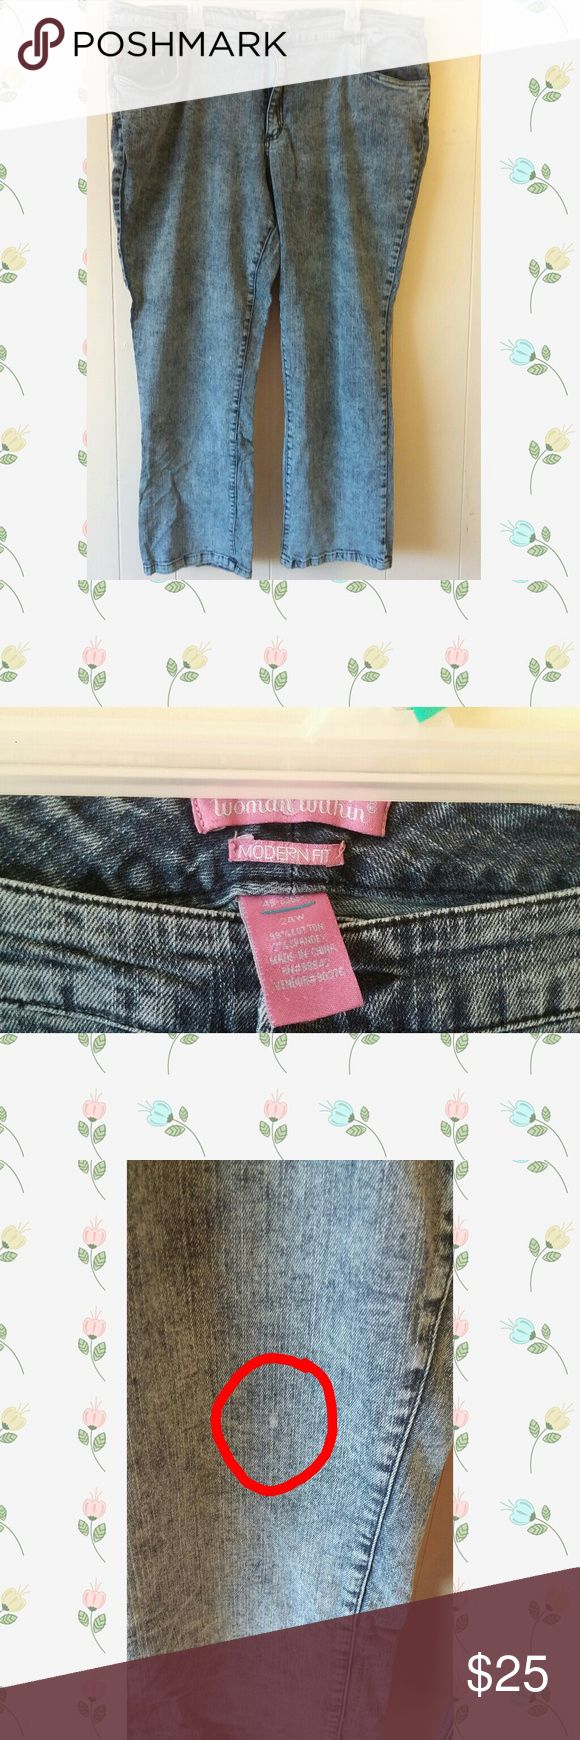 Women Within Acid Wash Skinny Jeans Women Within Acid Wash Skinny Jeans Modern fit size 24W.  Had one spot on them see pics. Great condition otherwise. Worn a few times. Has stretch. Great for my thick thighed sistas. Bundle to save! Floral top and black Toms available in my closet! Woman Within Jeans Skinny